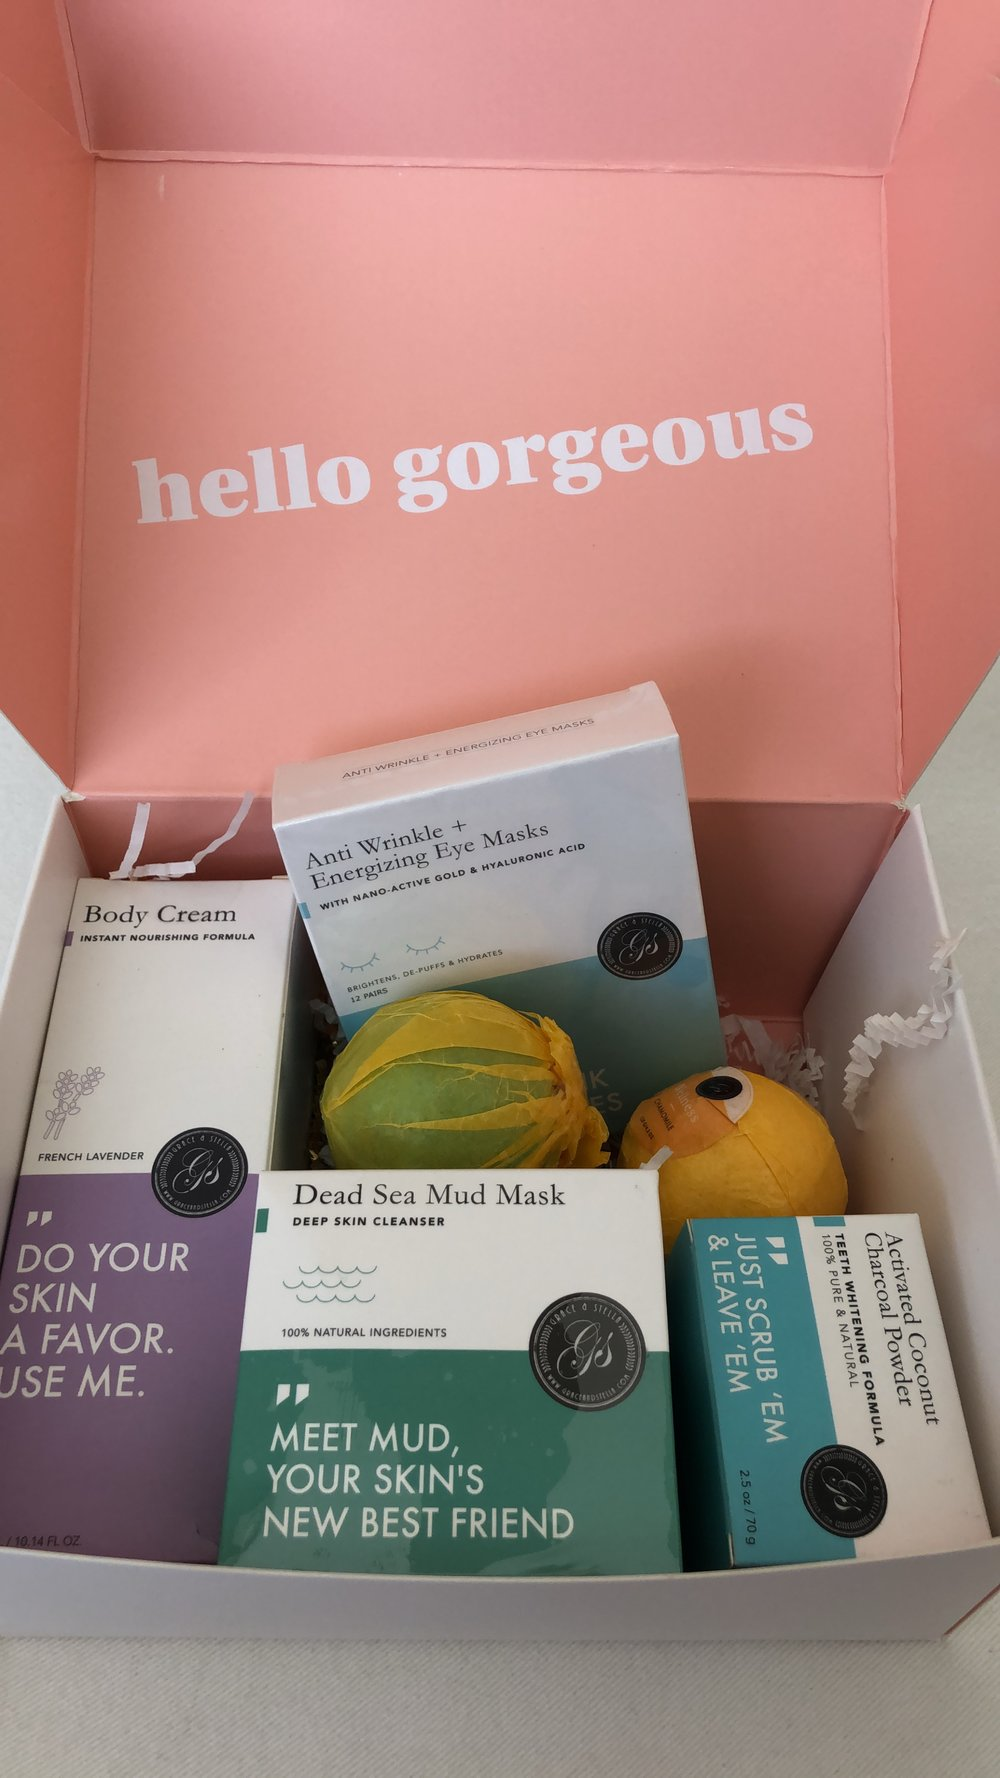 The box comes with ALL of these wonderful, vegan and cruelty free products:  Anti-Wrinkle + Energizing Eye Masks (12 pairs!)  Dead Sea Mud Mask  2 XL Bath Bombs  Activated Charcoal Teeth Whitening Set  Lavender Body Lotion